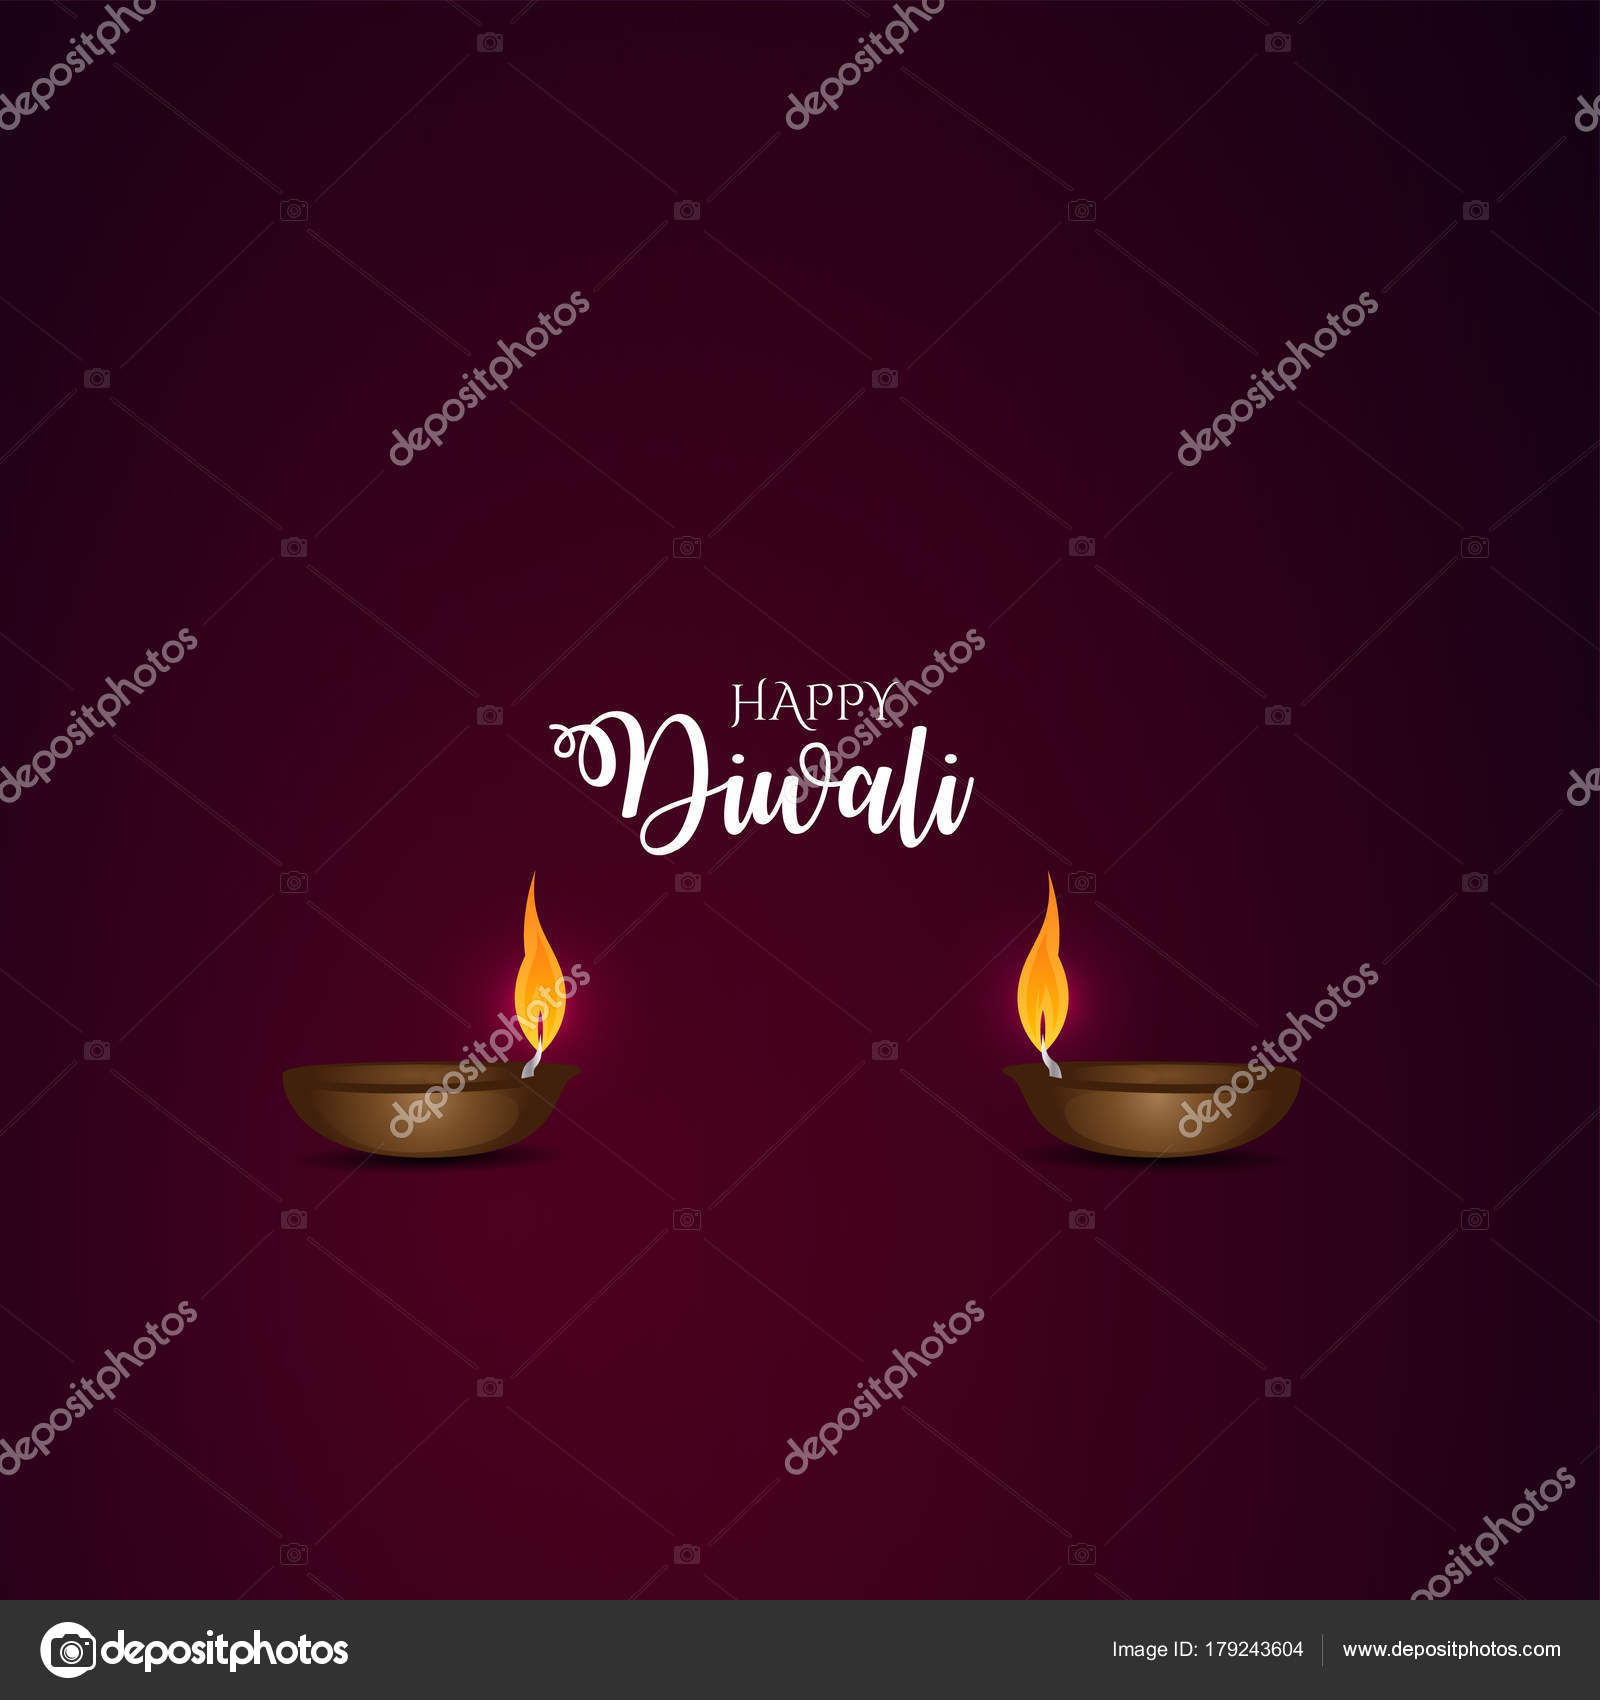 Happy diwali greeting card background design idea stock vector happy diwali greeting card background design idea stock vector m4hsunfo